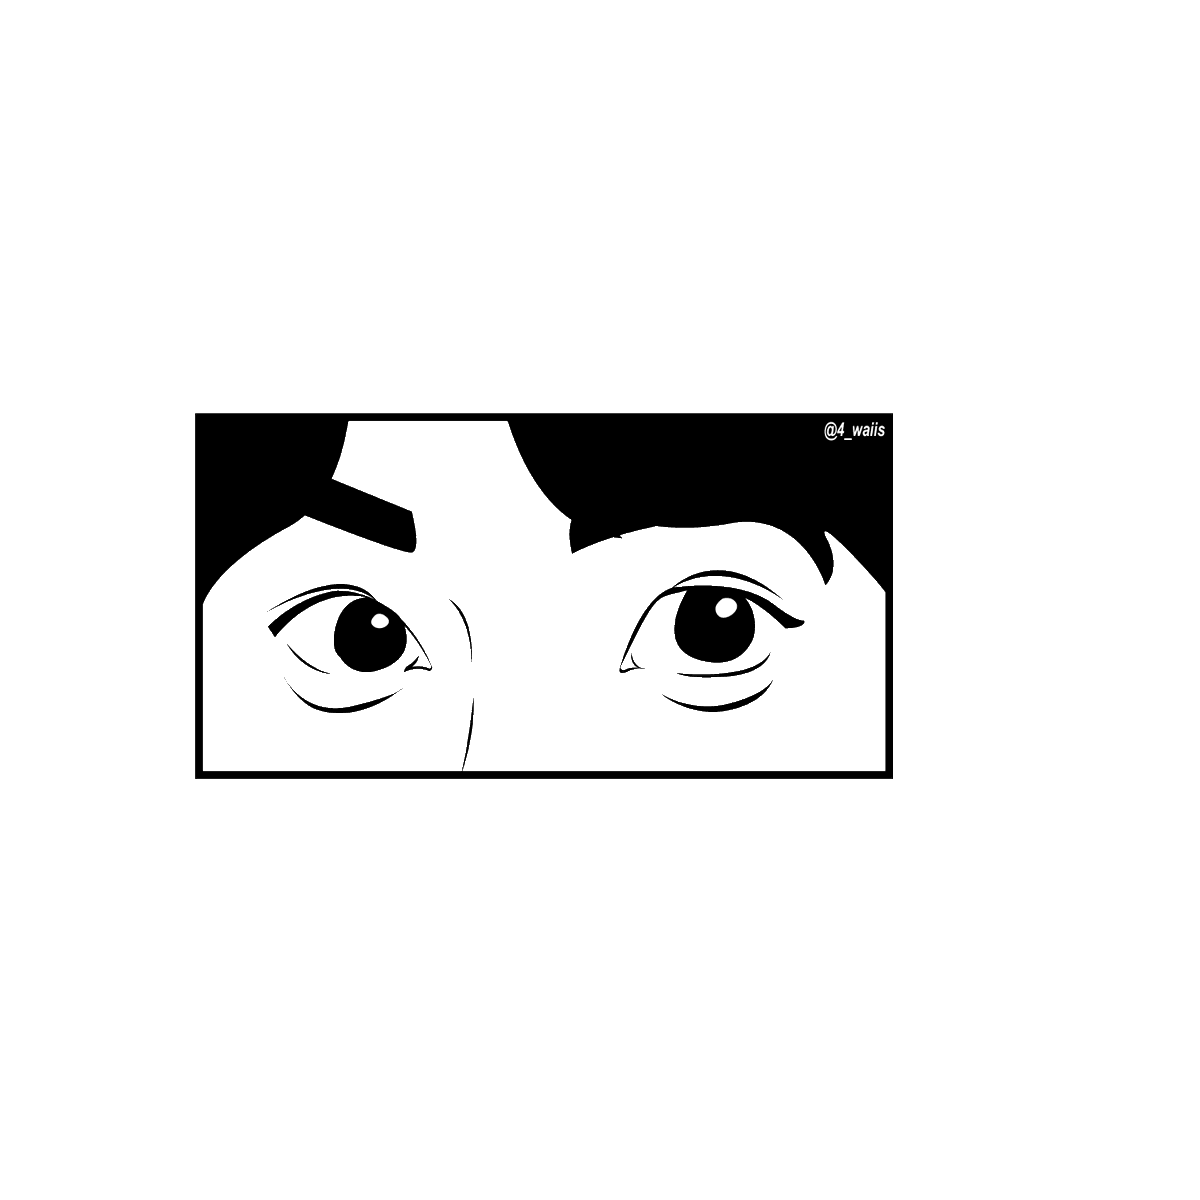 Weasel Mcweasel On Twitter Waddup Lads I Made A Vector Of My Jungkook Sketch Also I Just Realised Its Transparent But I Cant Be Bothered To Deal W It Https T Co Czqui3luef